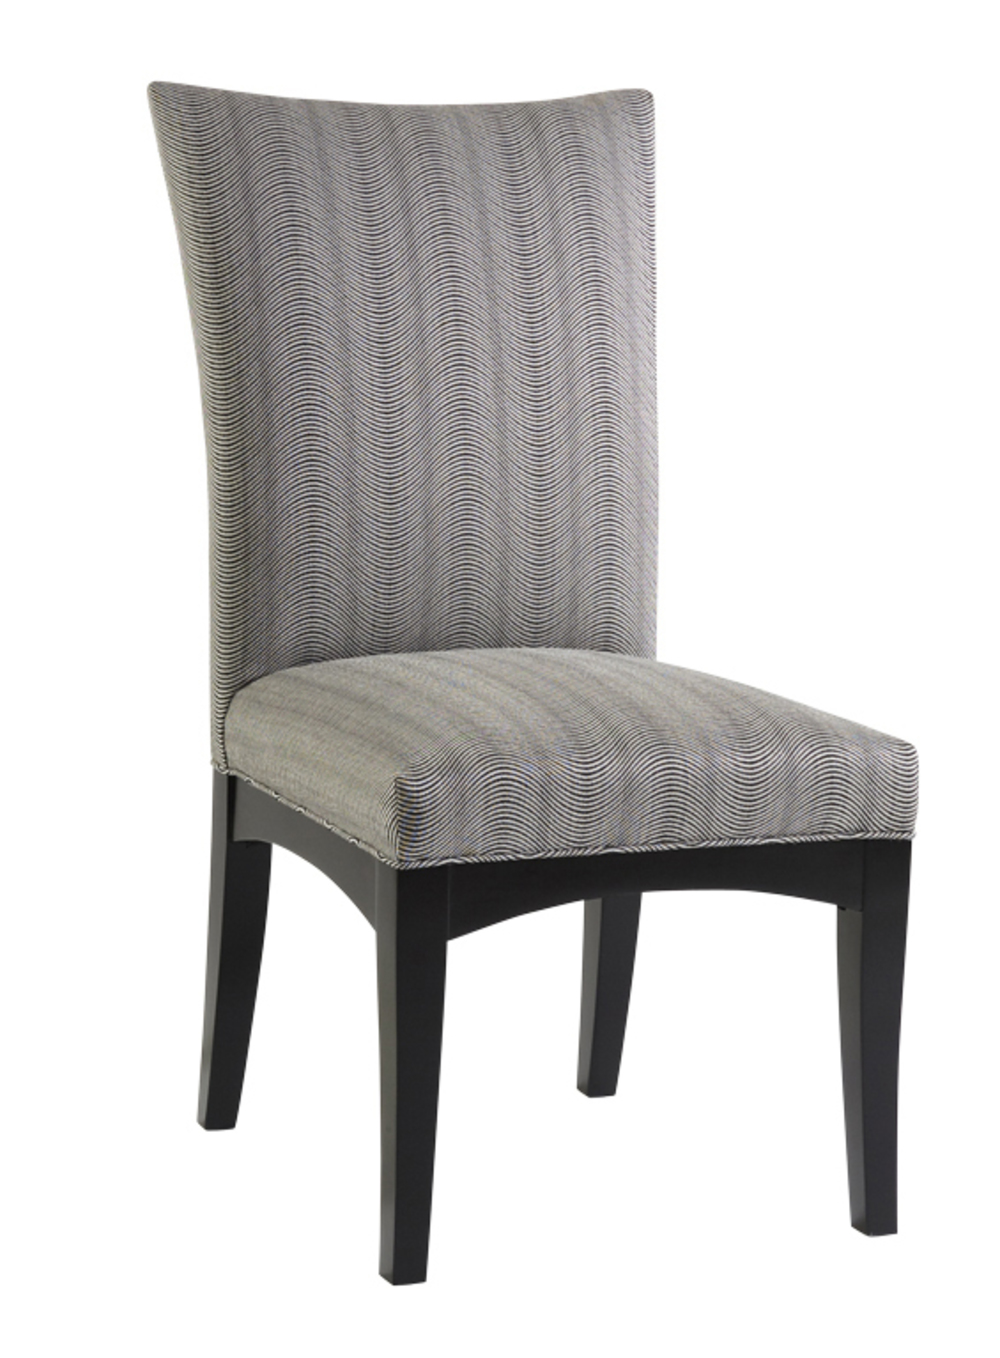 Lazar - Modena Dining Side Chair